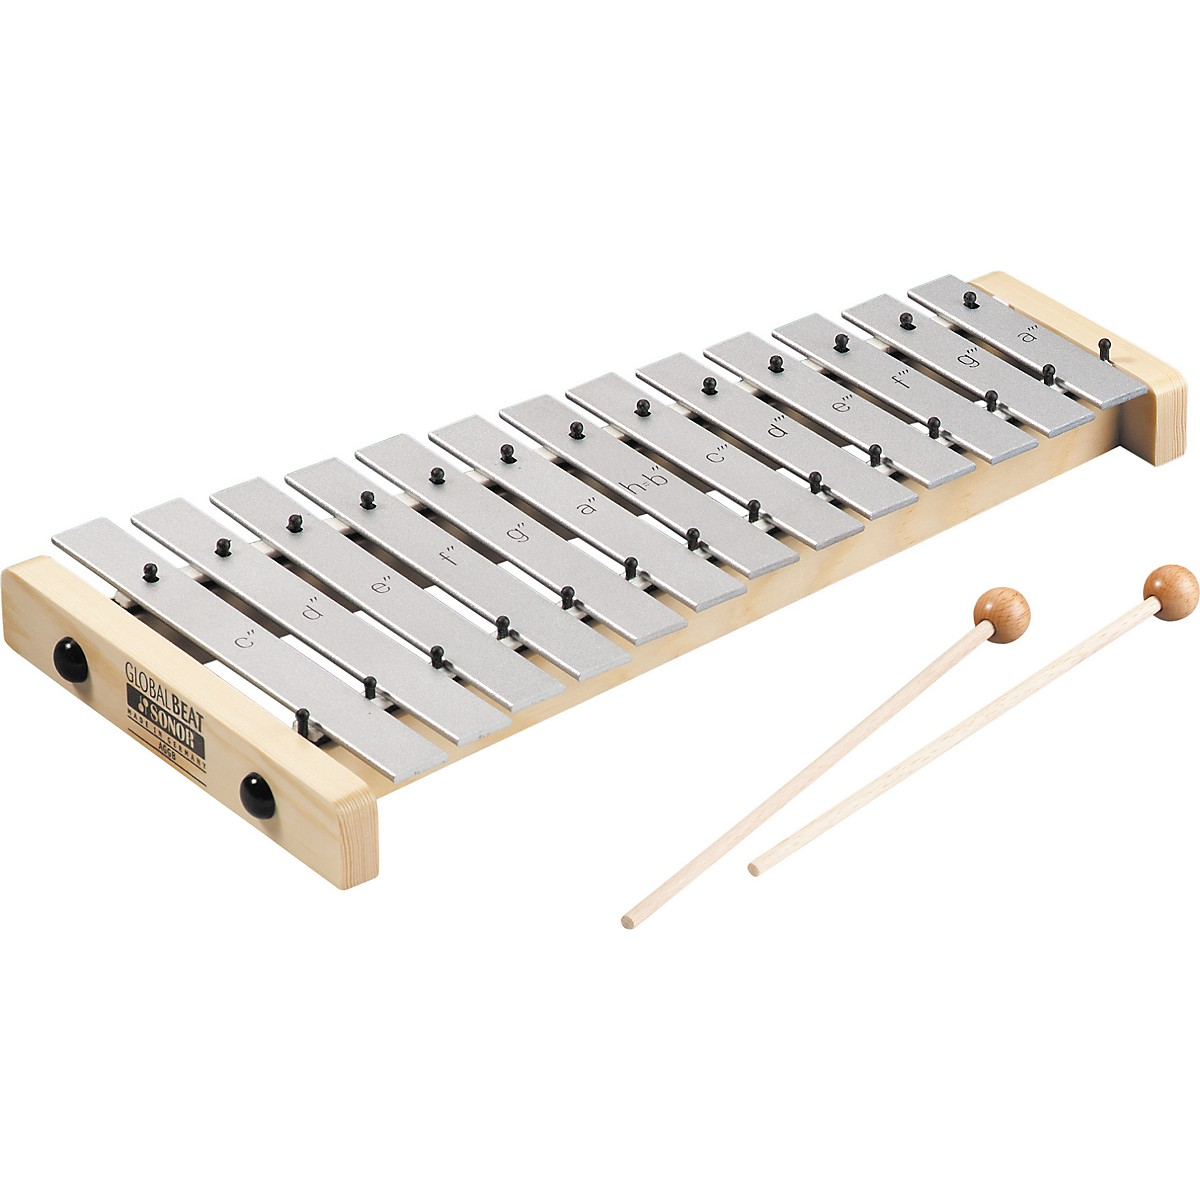 Sonor Orff Global Beat Alto Glockenspiel